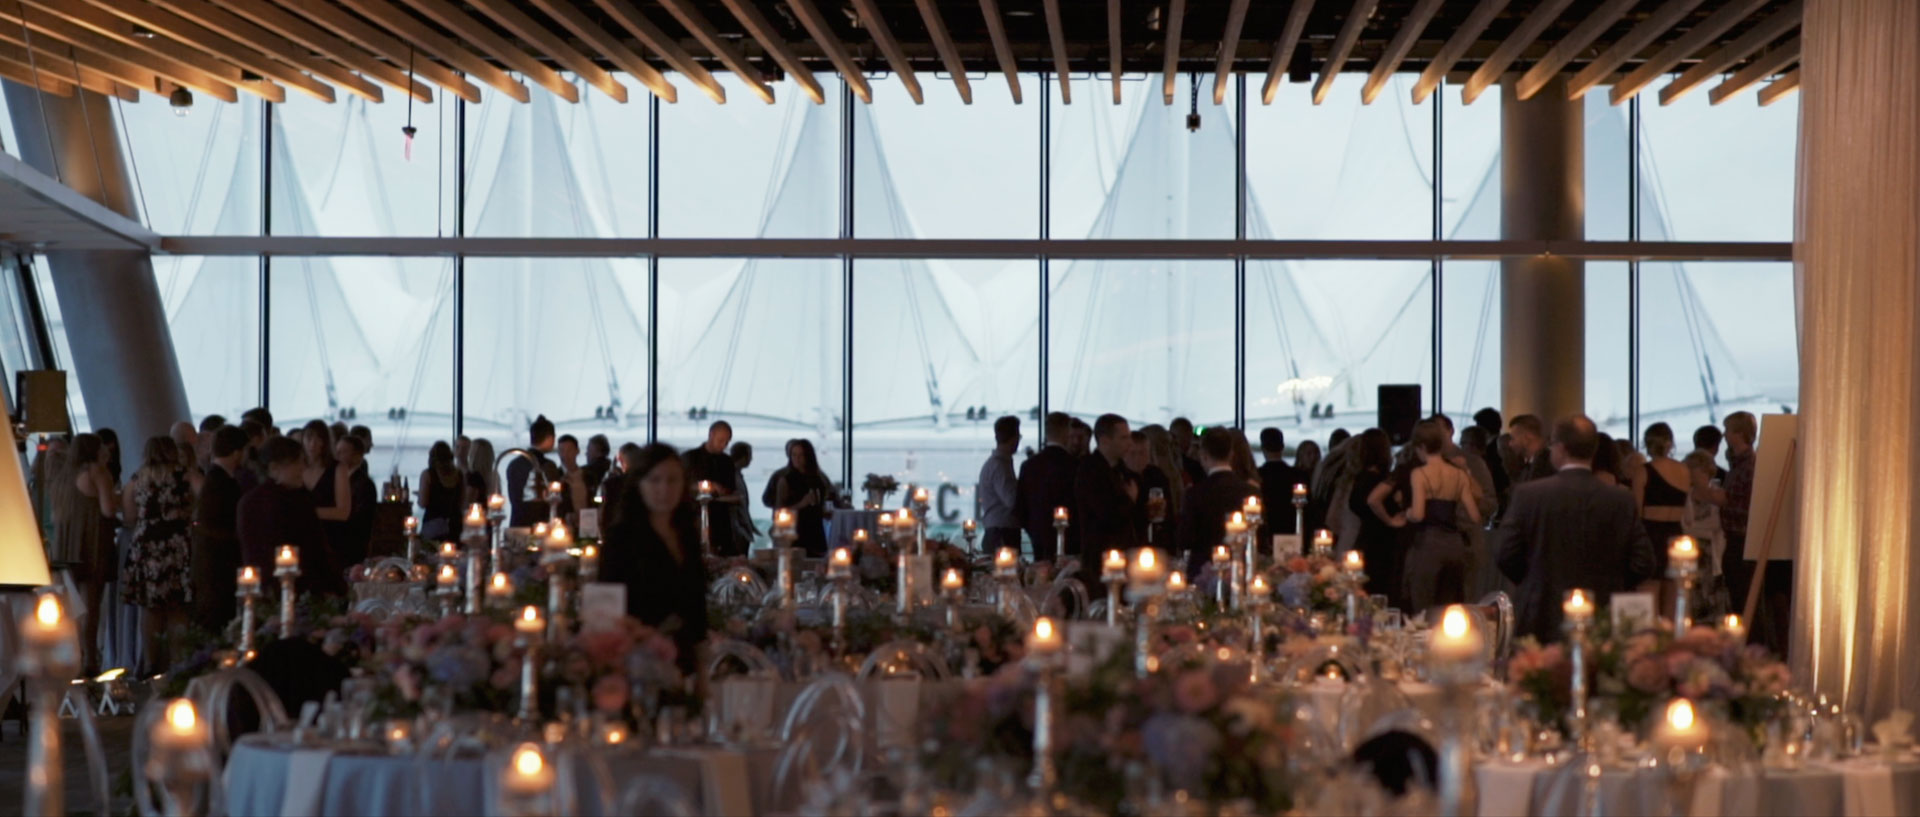 Vancouver convention centre wedding video vancouver by kismet creative wedding films